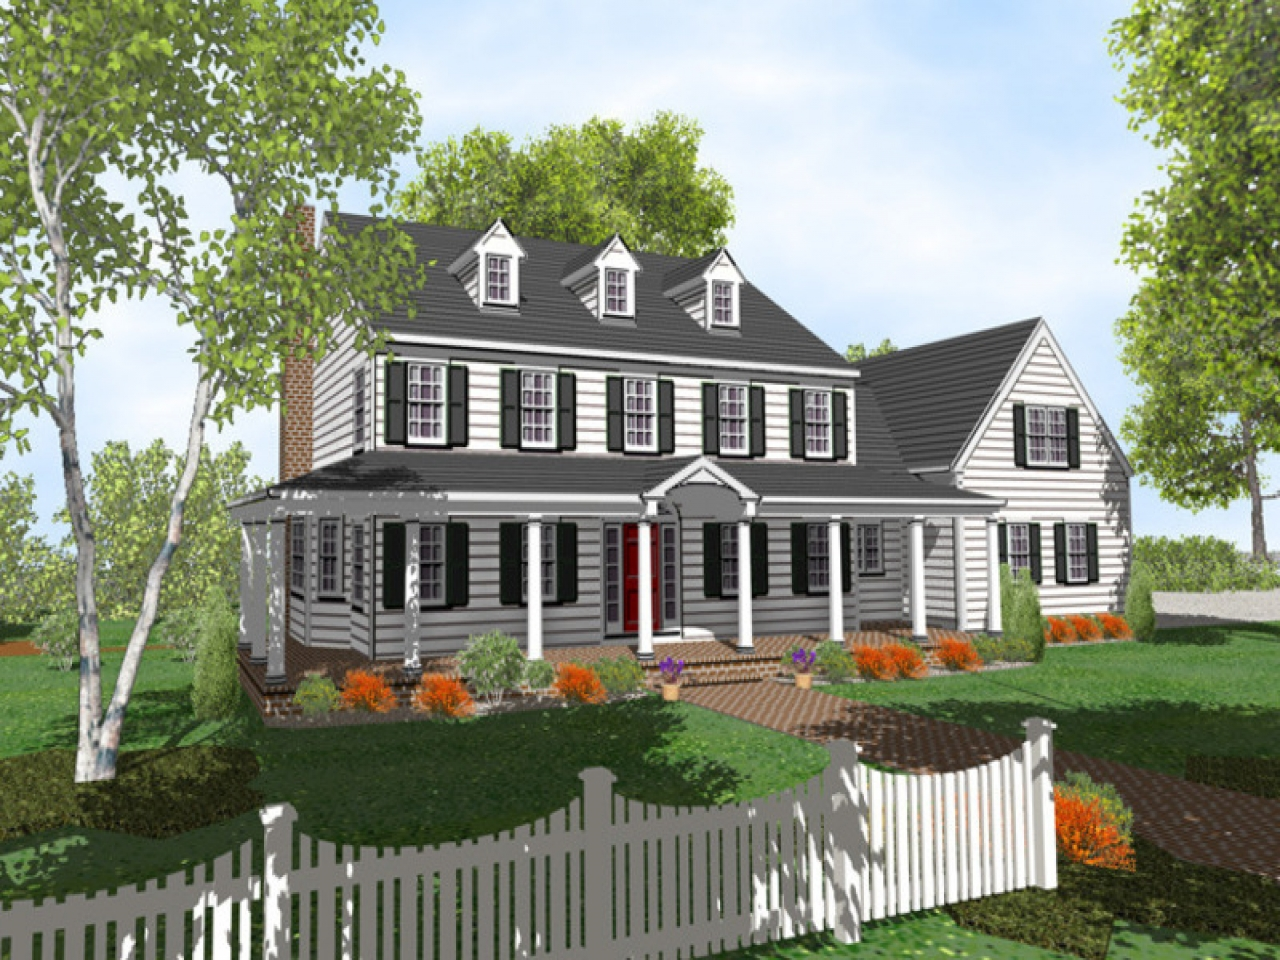 Dream Home Design USA - Luxury Homes Plans Two story house plans with pictures